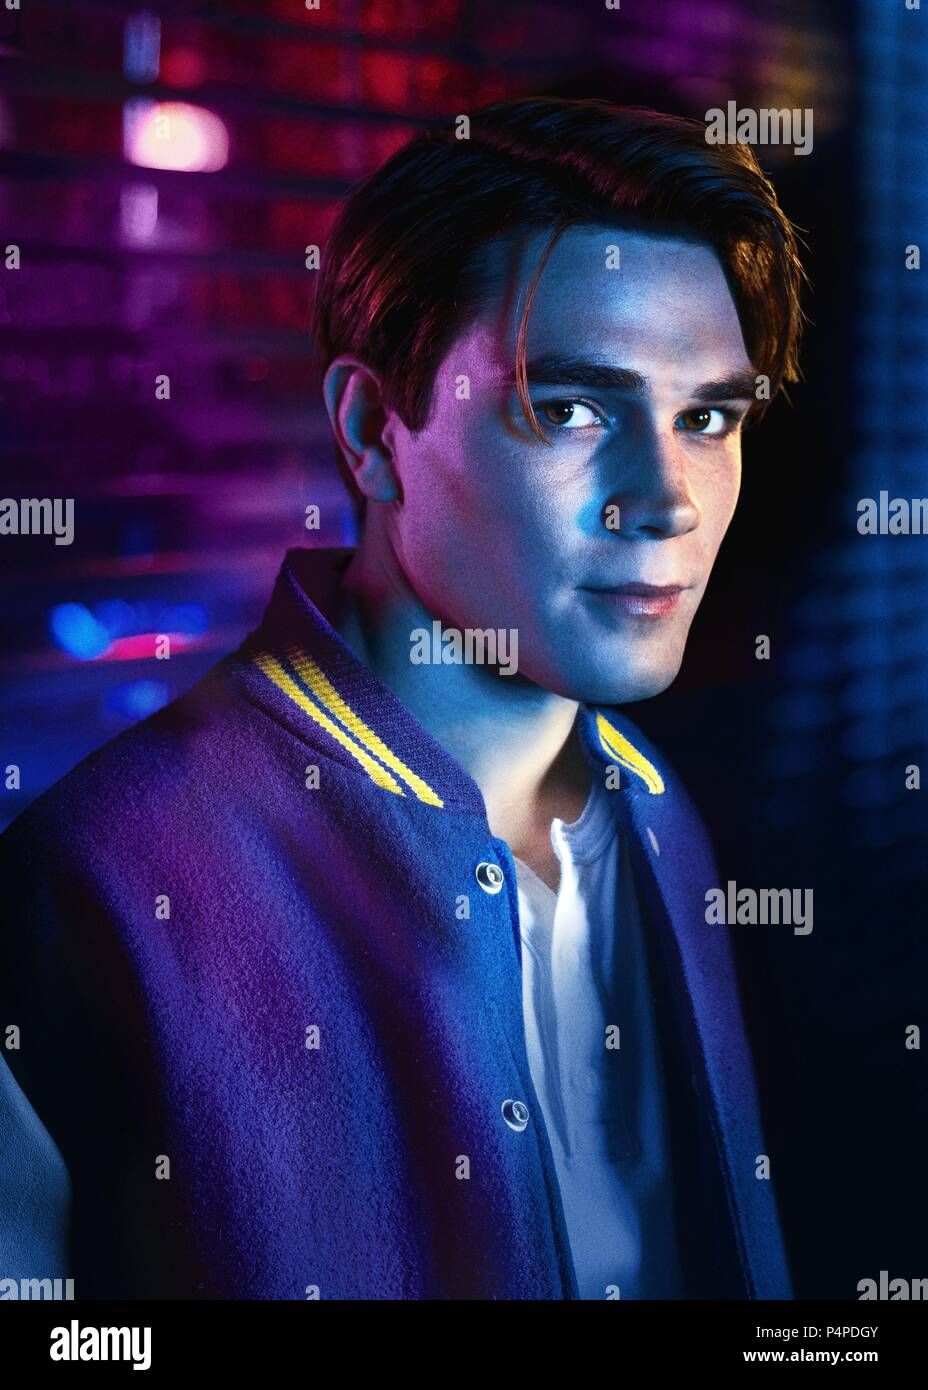 Description: Season 1.  Original Film Title: RIVERDALE.  English Title: RIVERDALE.  Film Director: ROBERTO AGUIRRE-SACASA.  Year: 2017.  Stars: KJ APA. Credit: CBS TELEVISION / Album - Stock Image